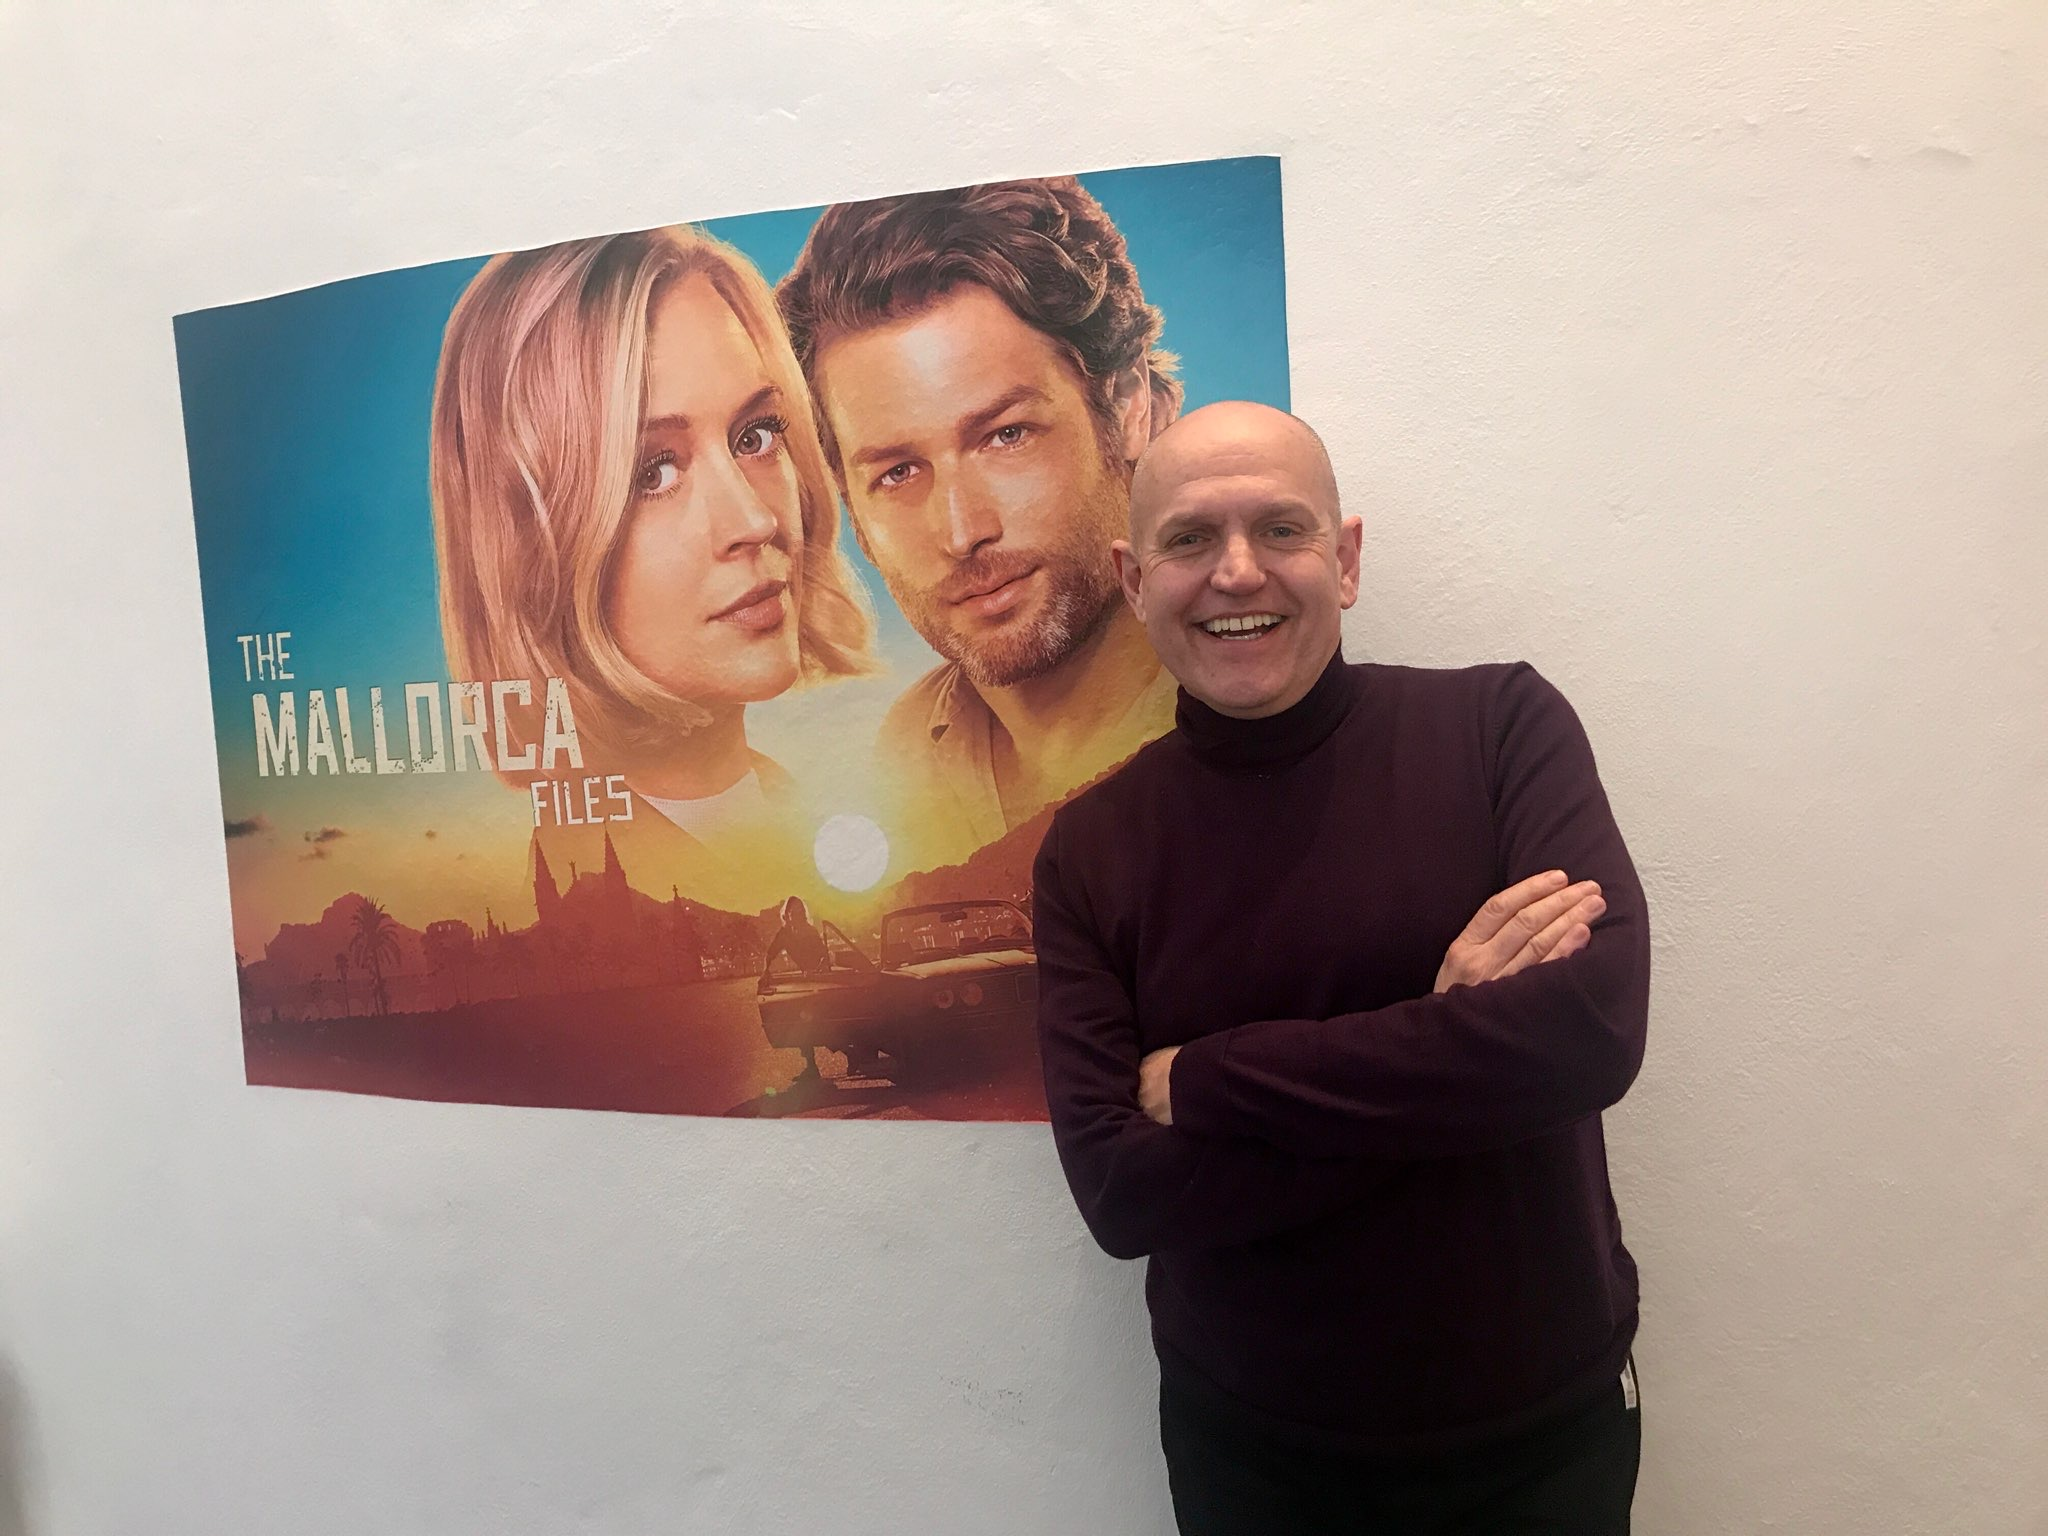 man in front of poster